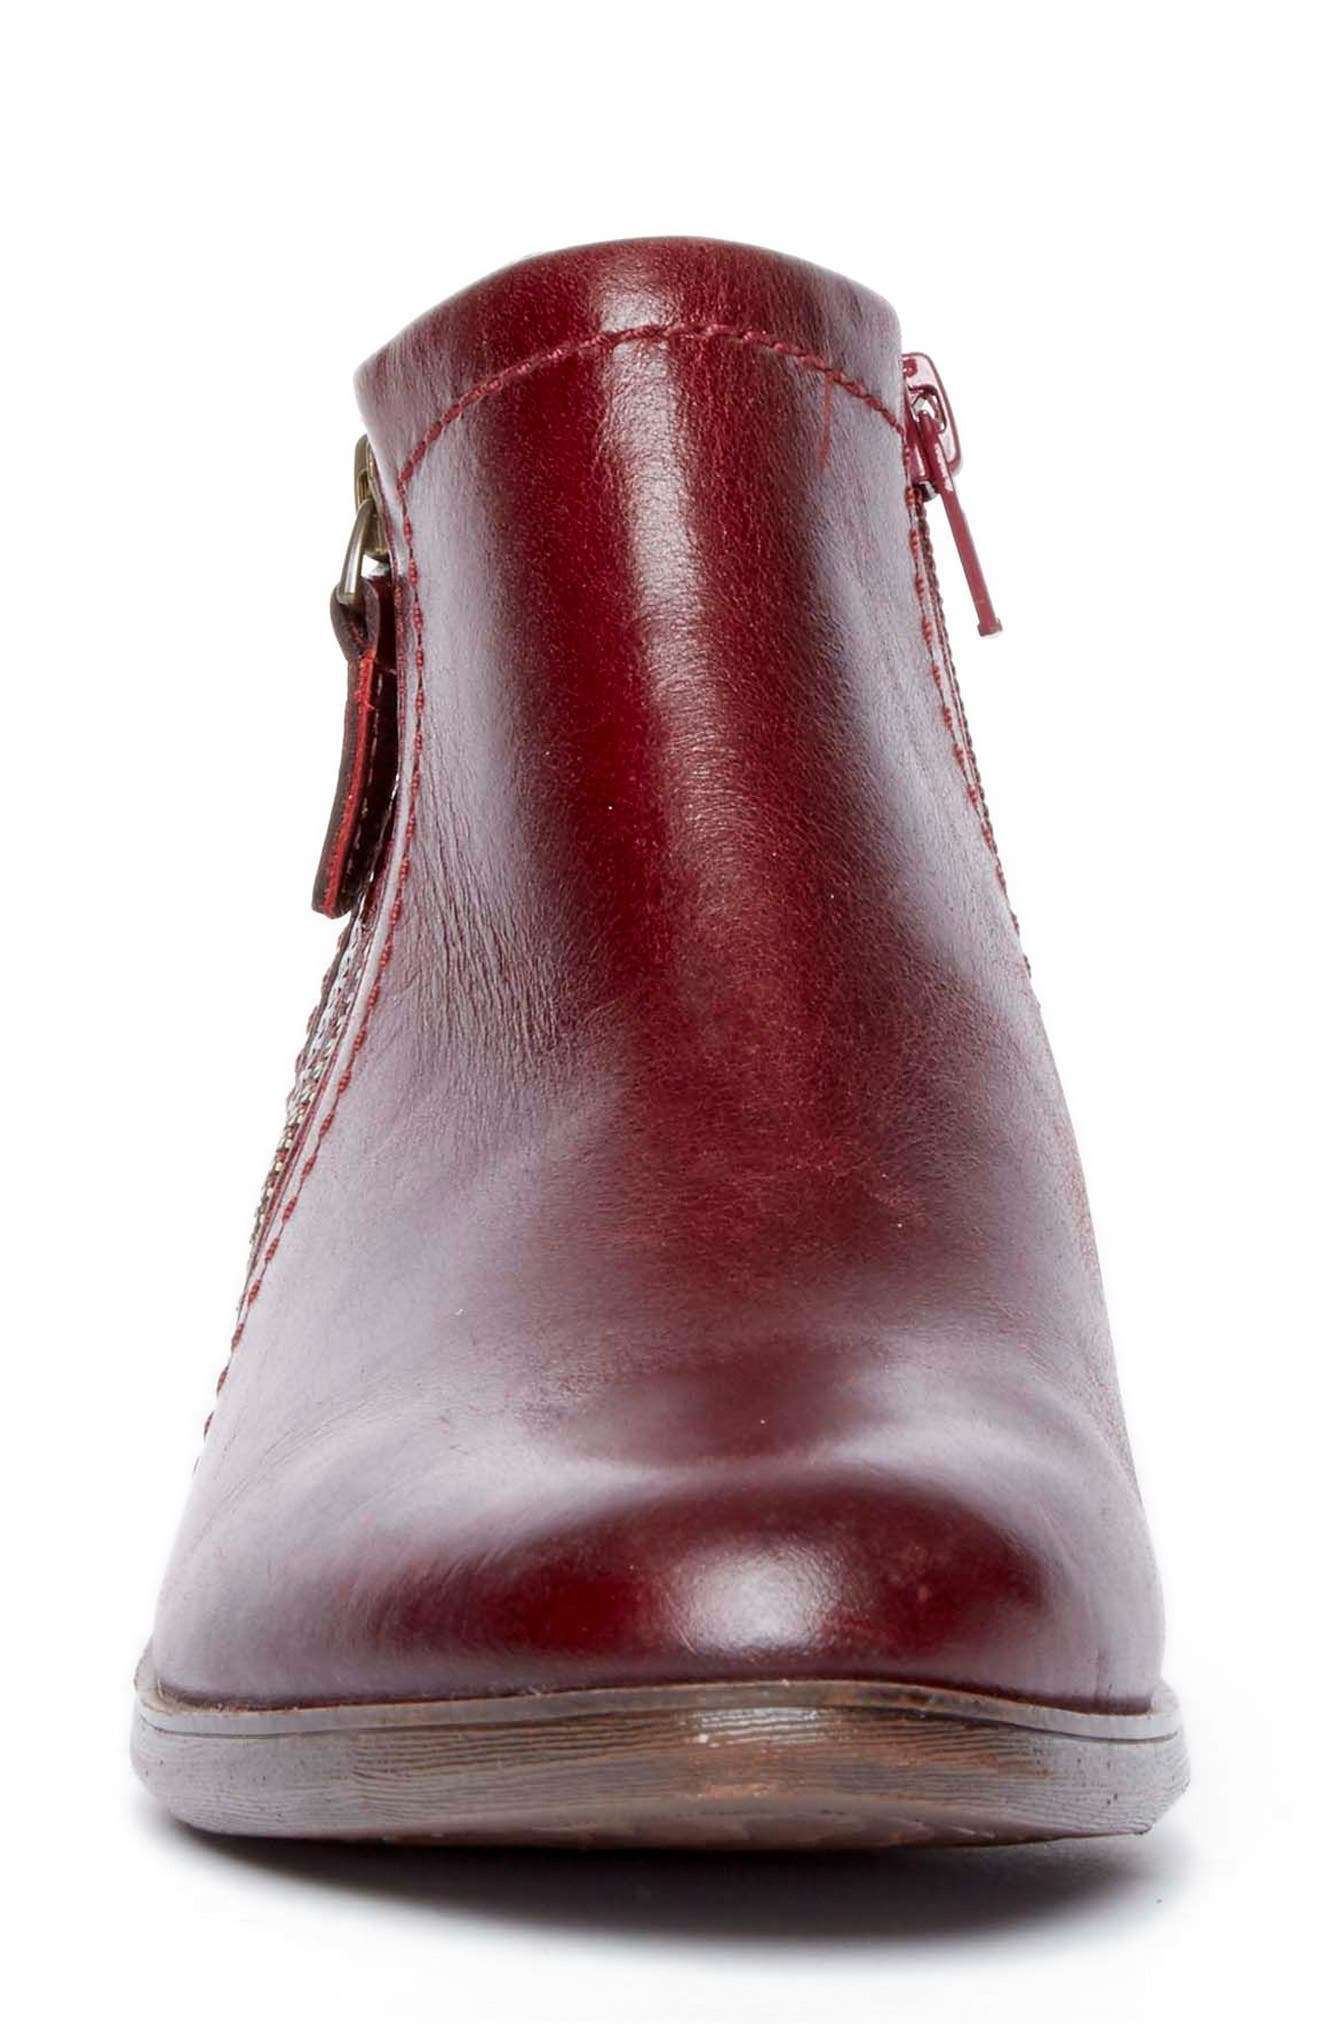 Oliana Bootie,                             Alternate thumbnail 4, color,                             Inferno Leather